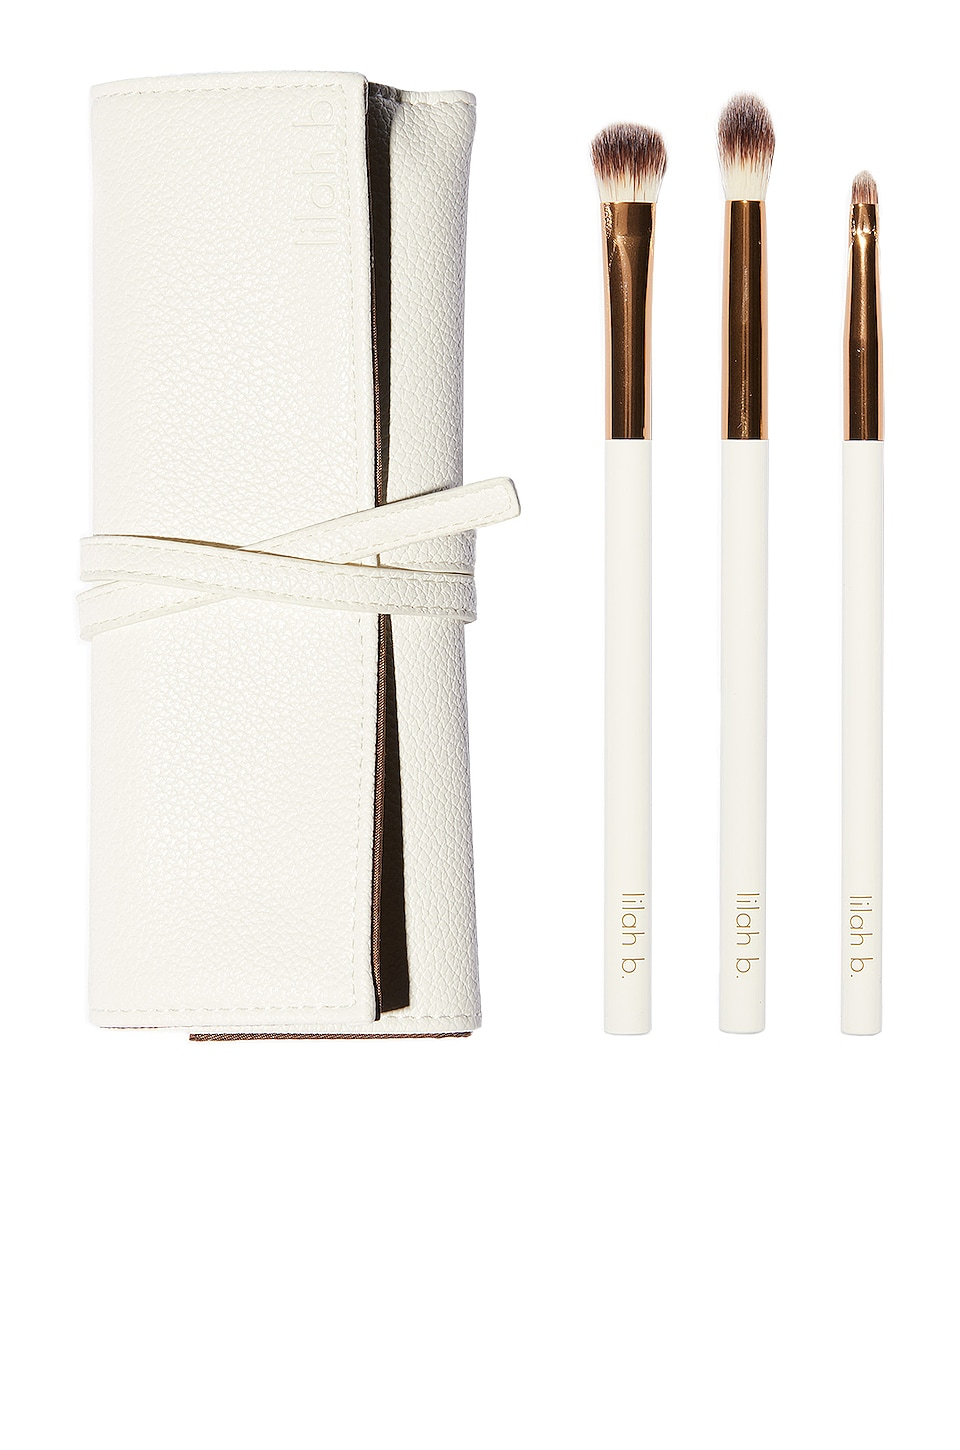 lilah b. ROLLO PARA PINCELES FOR YOUR EYES ONLY BRUSH ROLL